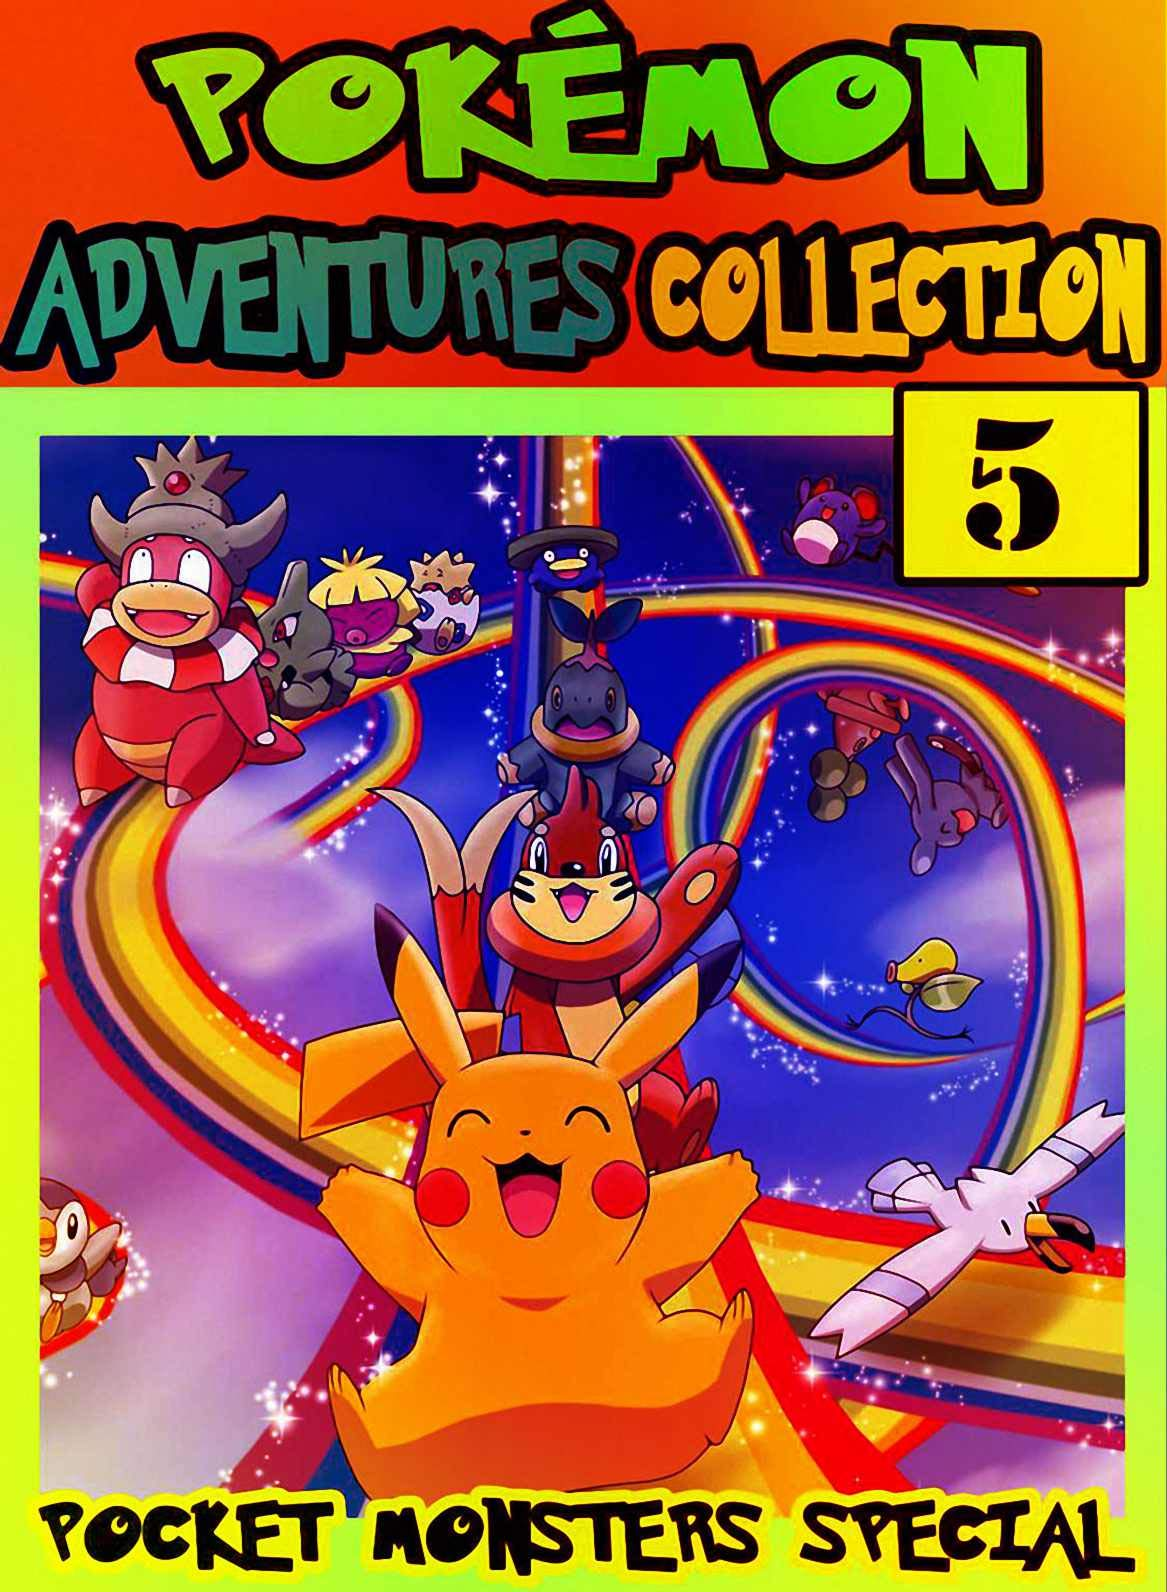 Pocket Special: New Collection 5 - Manga Adventures Pokemon Graphic Novel For Boys, Girls, Kids